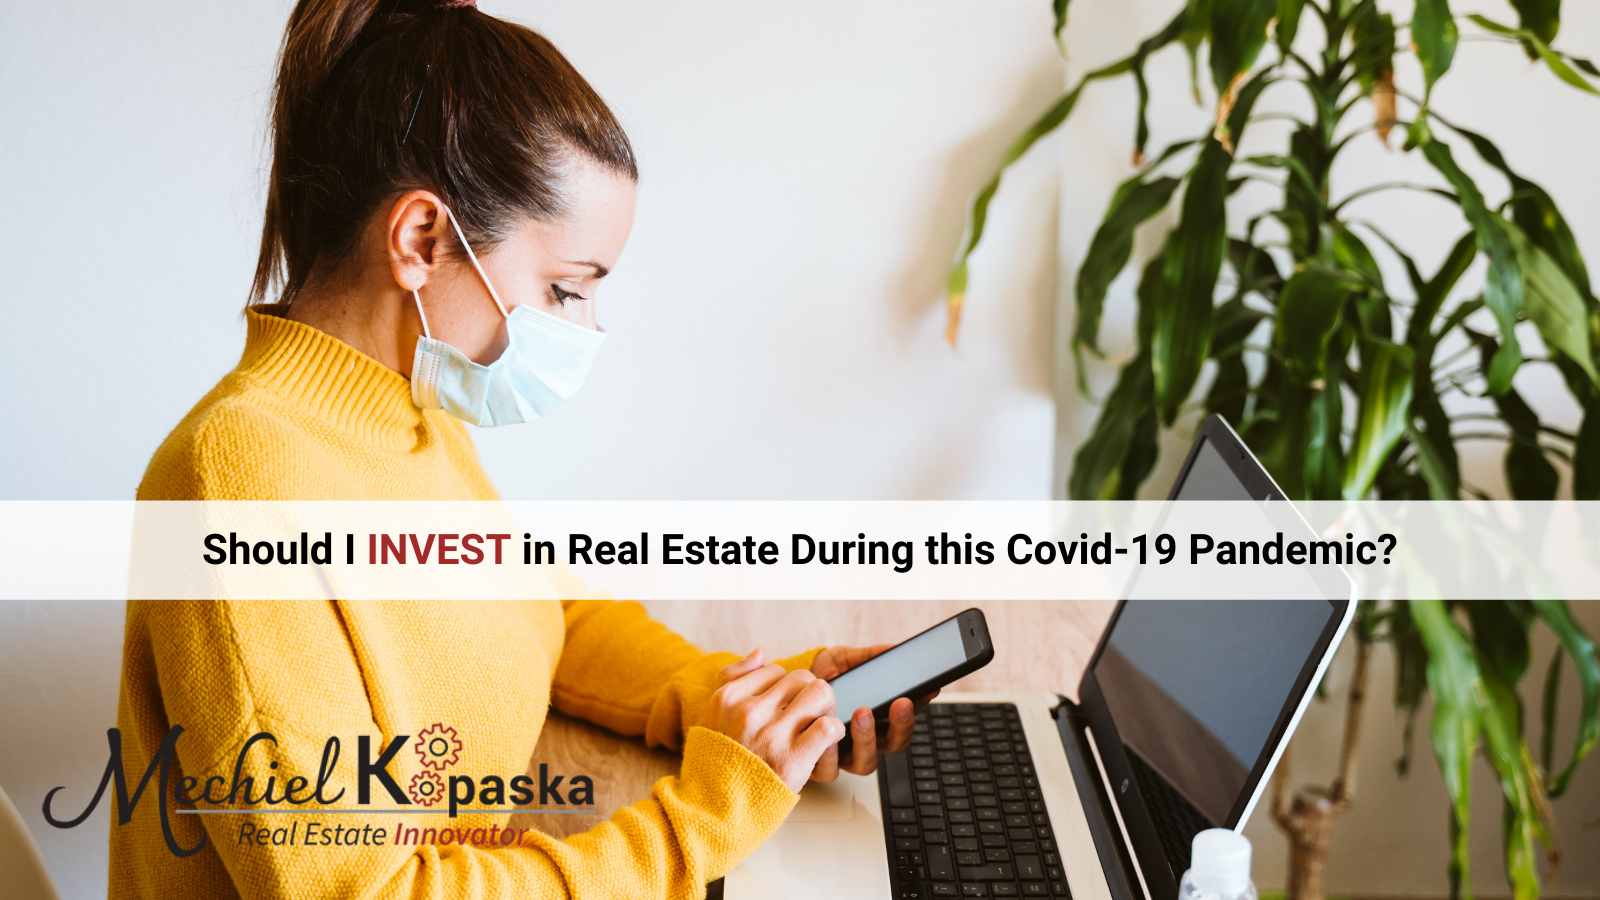 Should I Invest in Real Estate During this Covid-19 Pandemic?